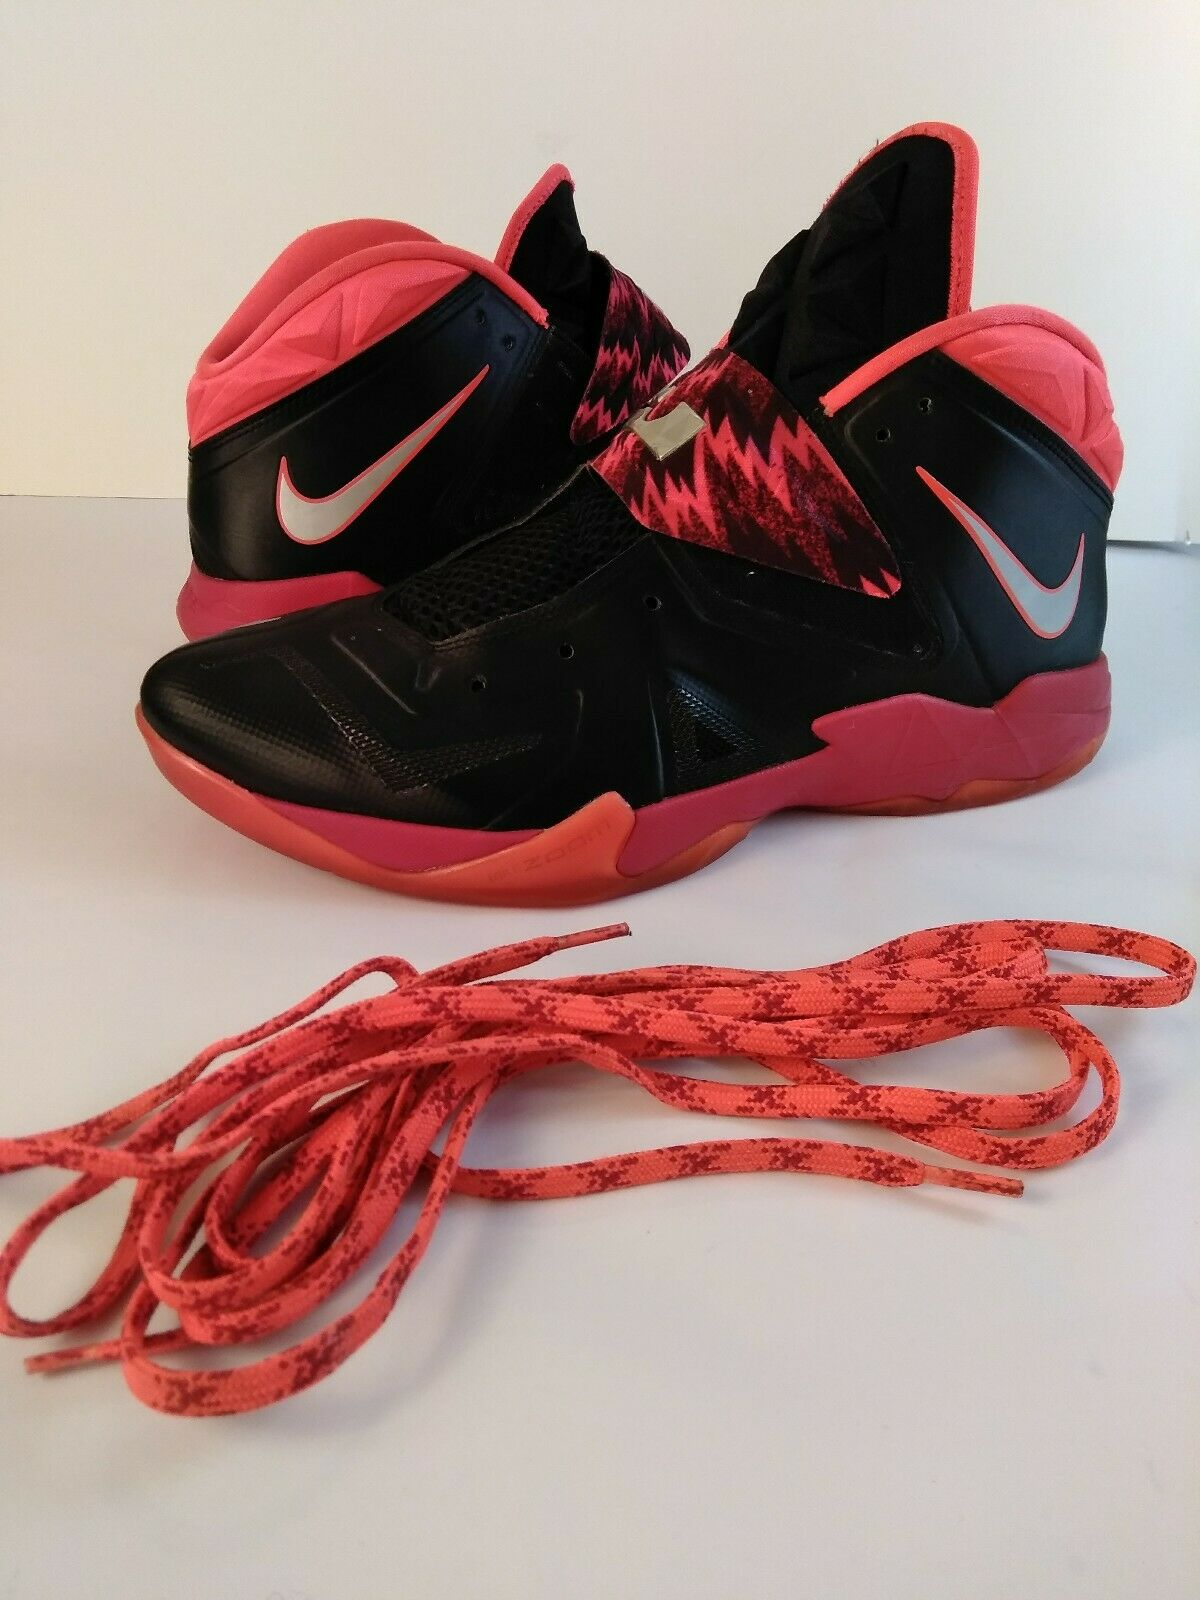 Nike 12 Size LeBron owned Condition Great Pre Strap King Red